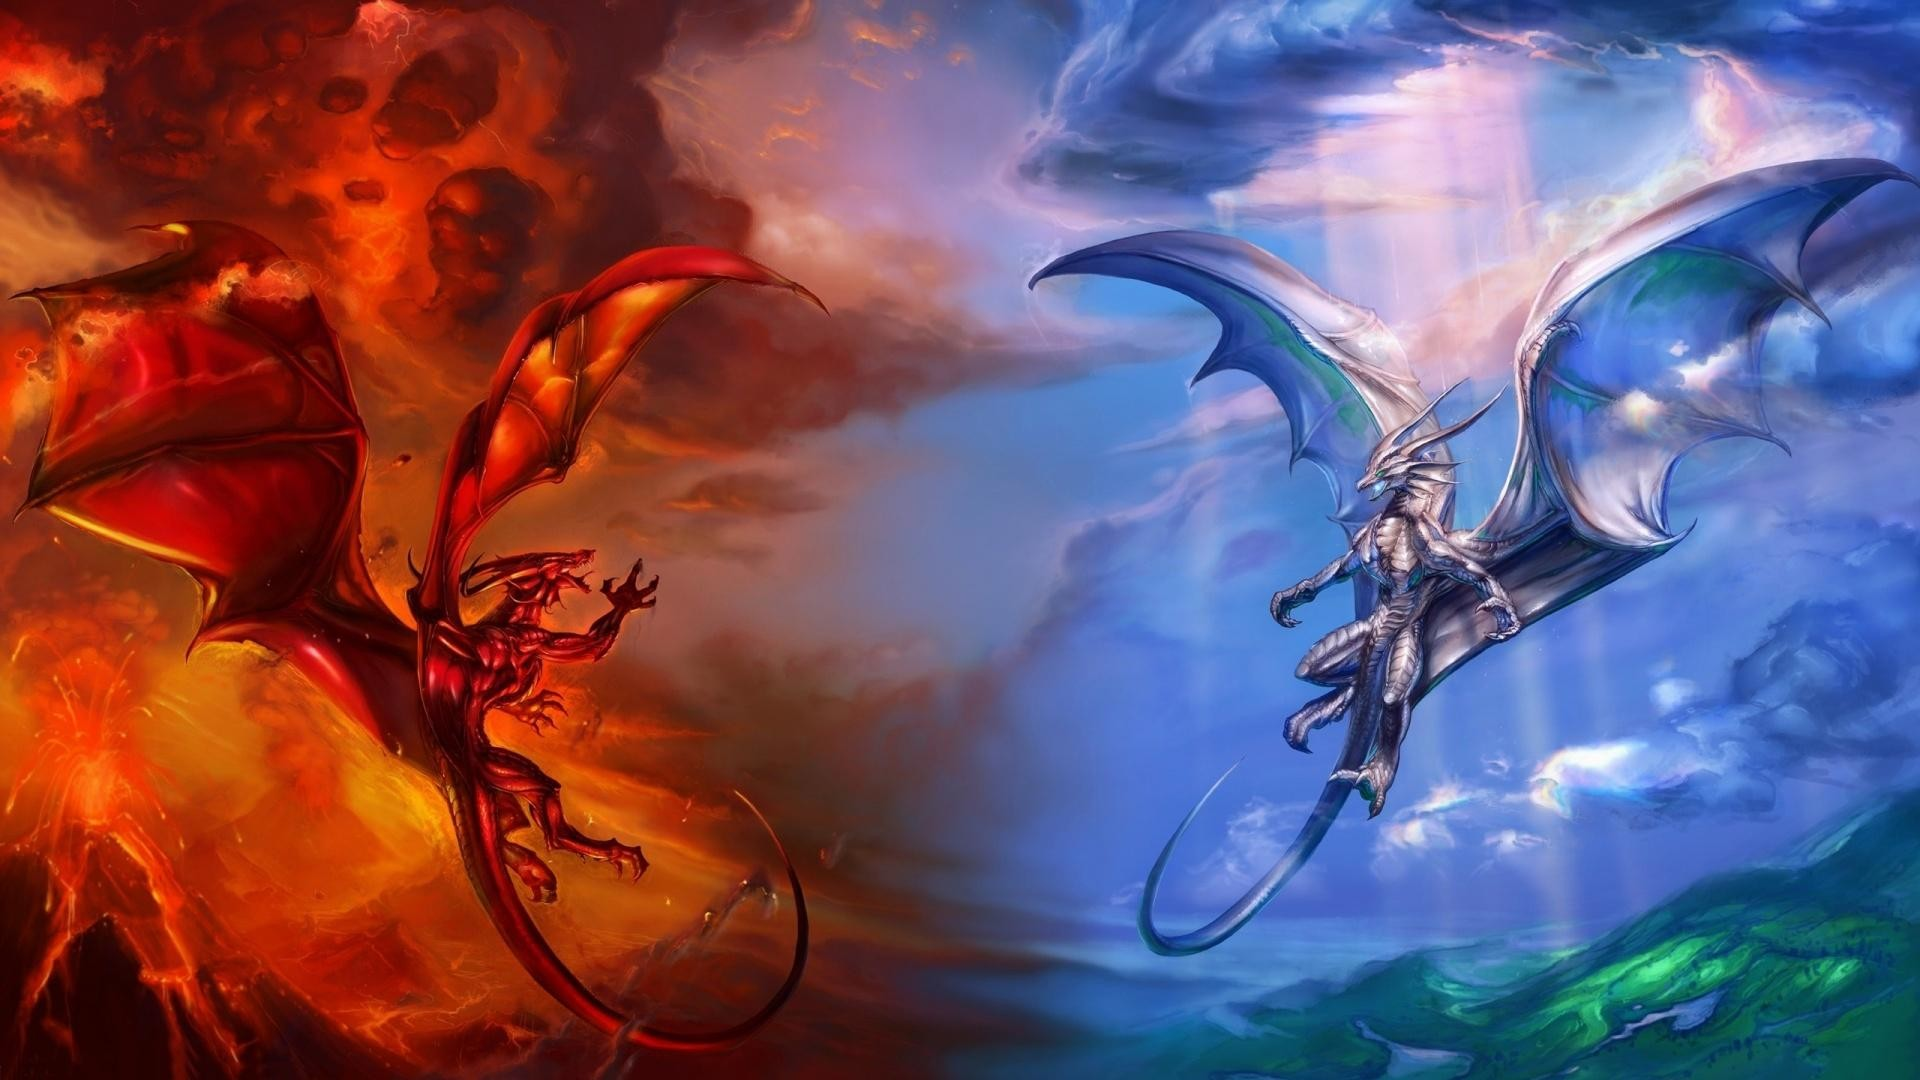 wallpaper.wiki-heaven-and-hell-dragons-1920×1080-PIC-